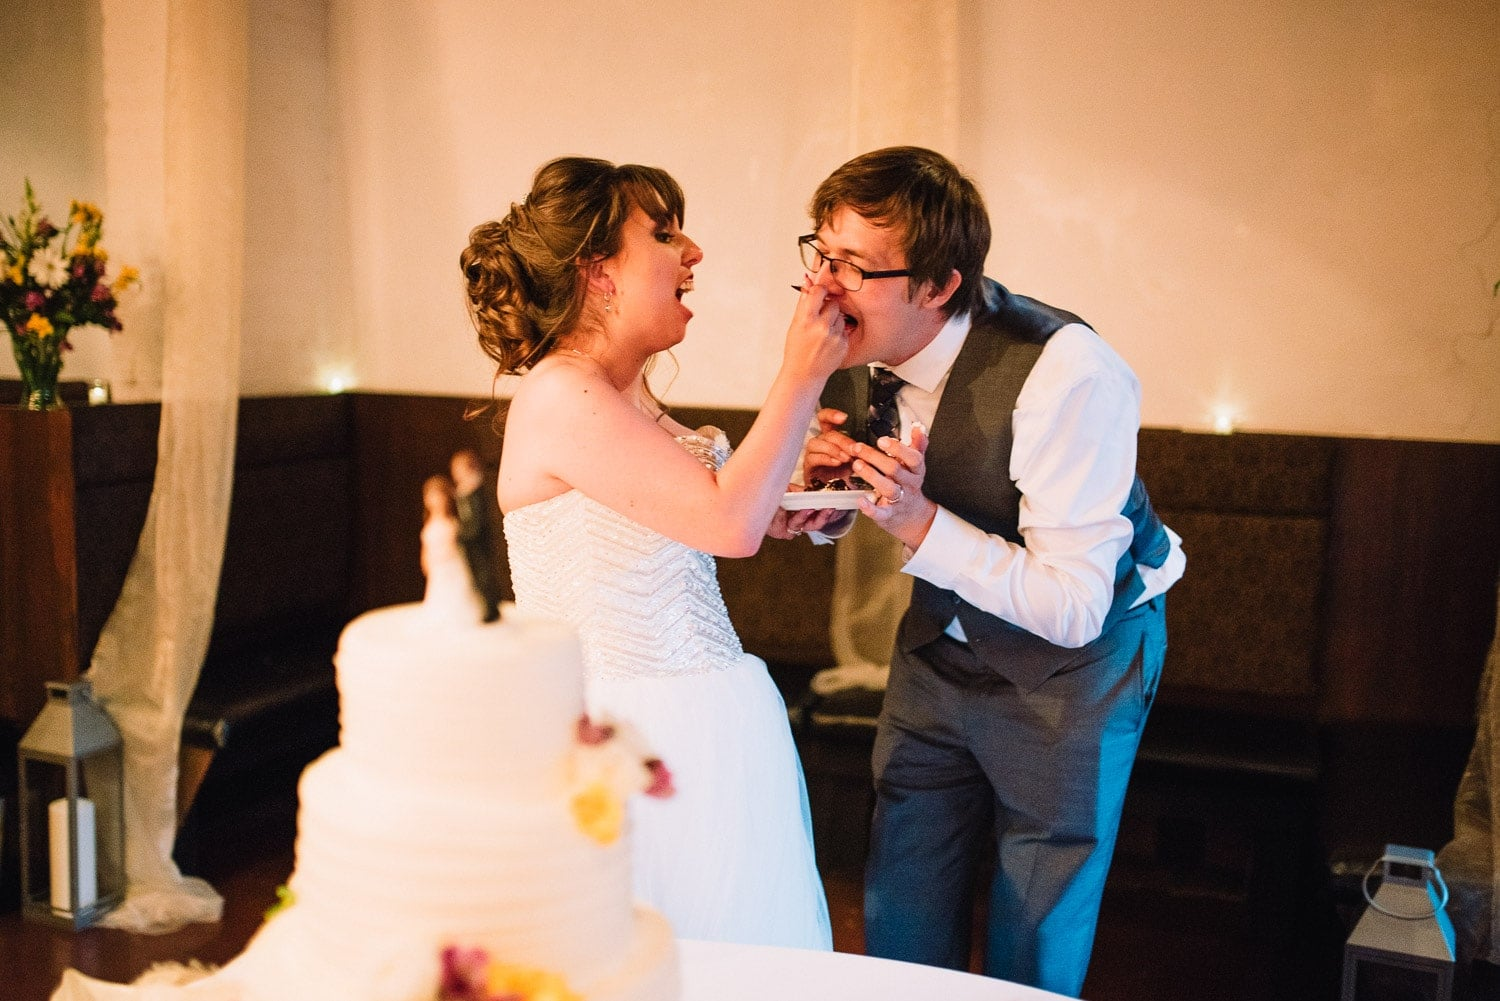 The bride is feeding wedding cake to her groom.